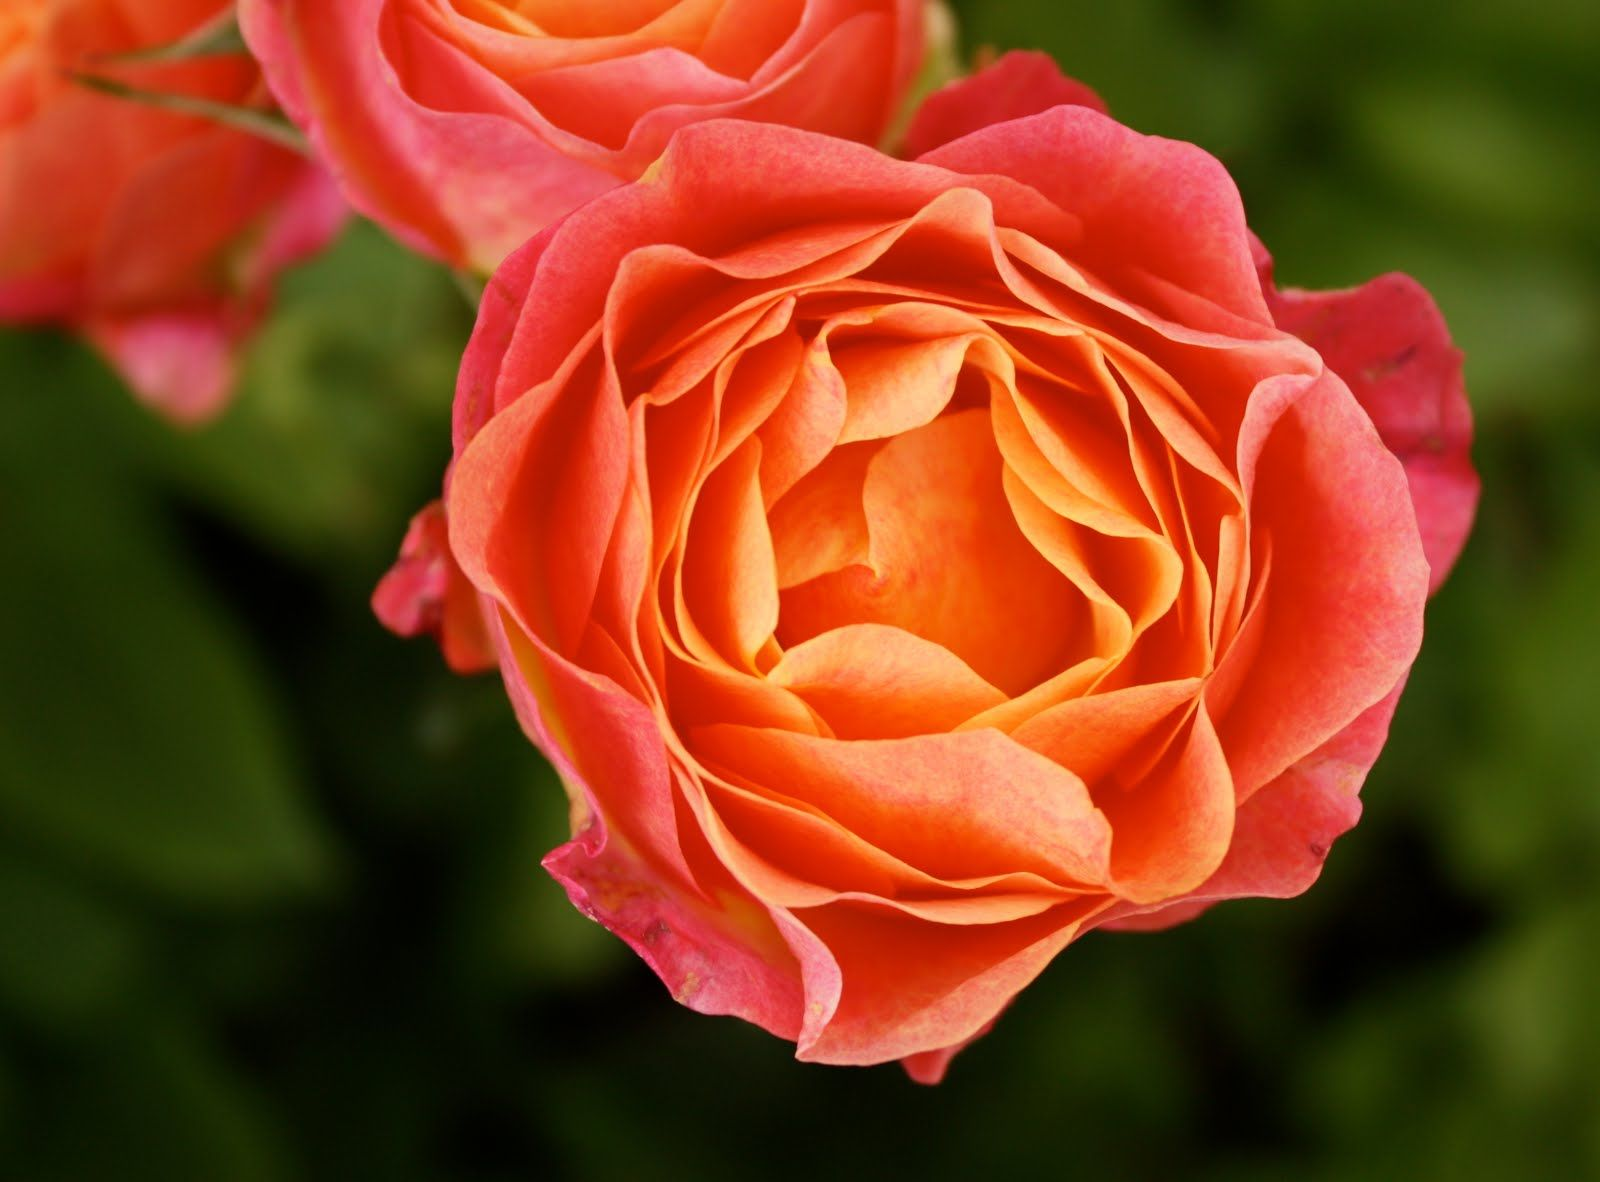 pictures of peach colored flowers | Our Color Journey ends here ...